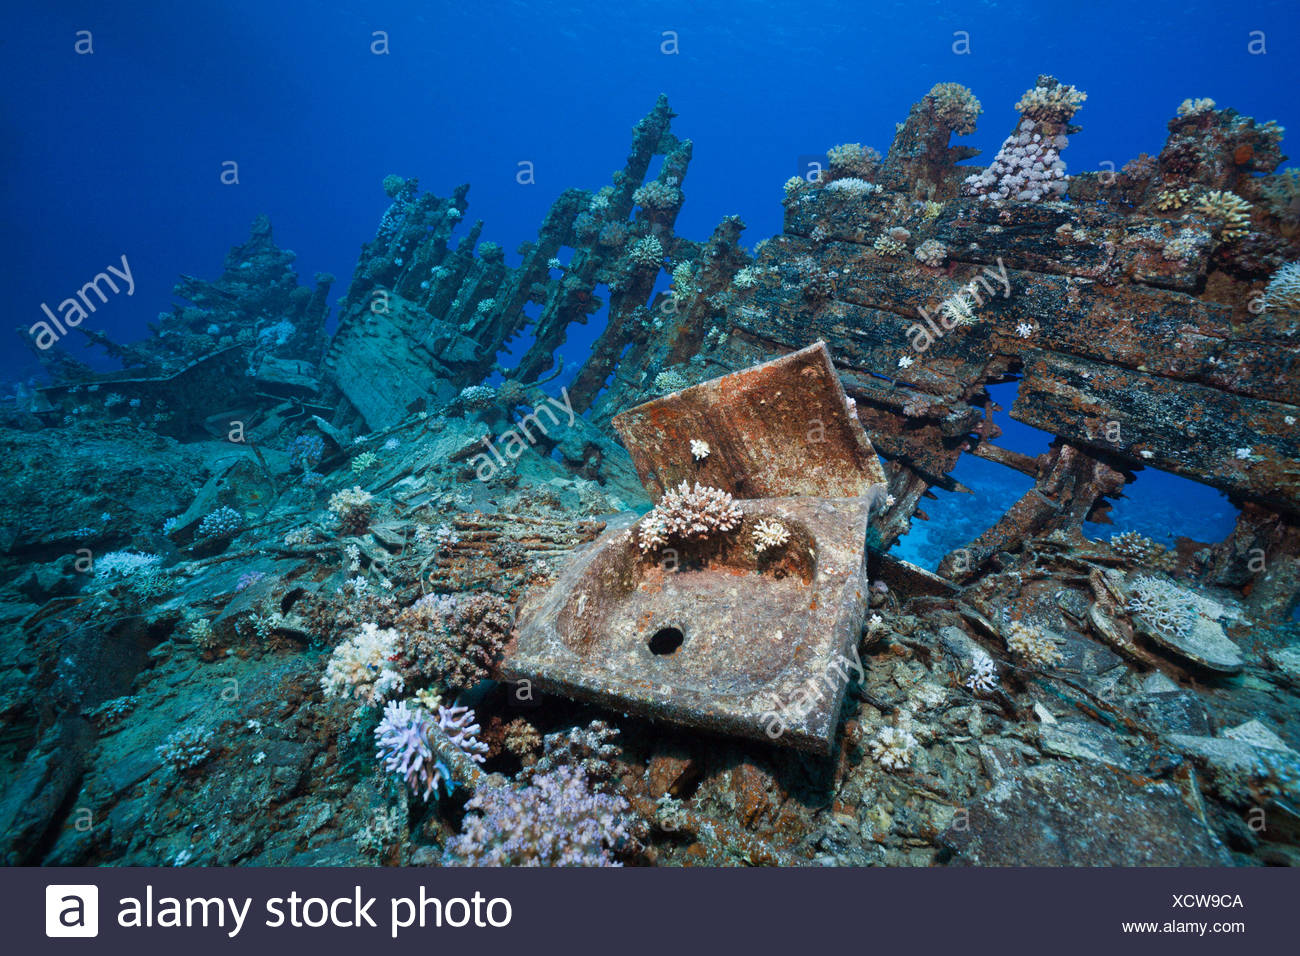 Wreckage of Heaven One Wreck, Abu Dabab Reef, Red Sea, Egypt - Stock Image